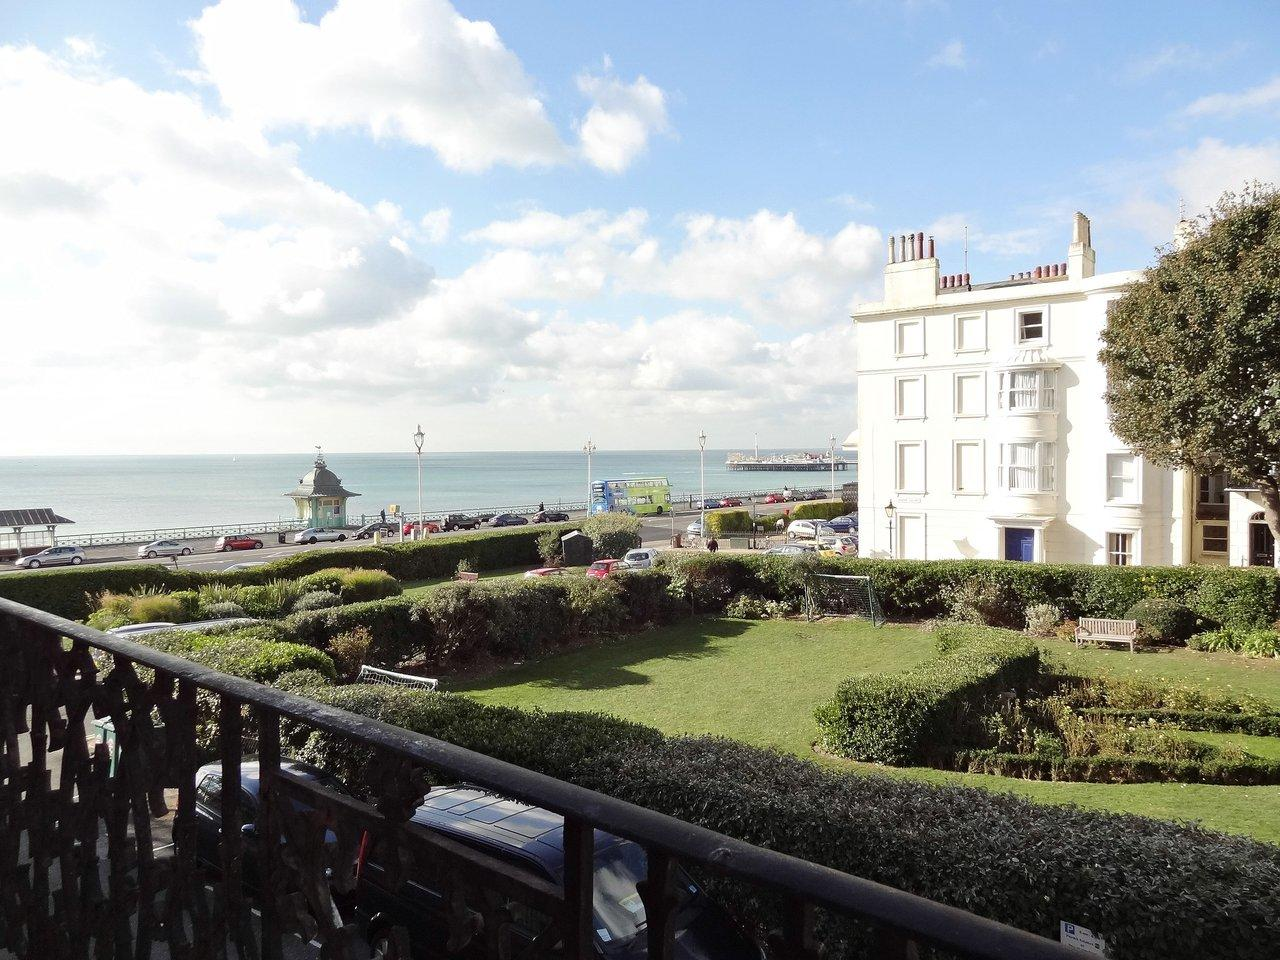 Marine Square, Brighton & Hove Images - 8